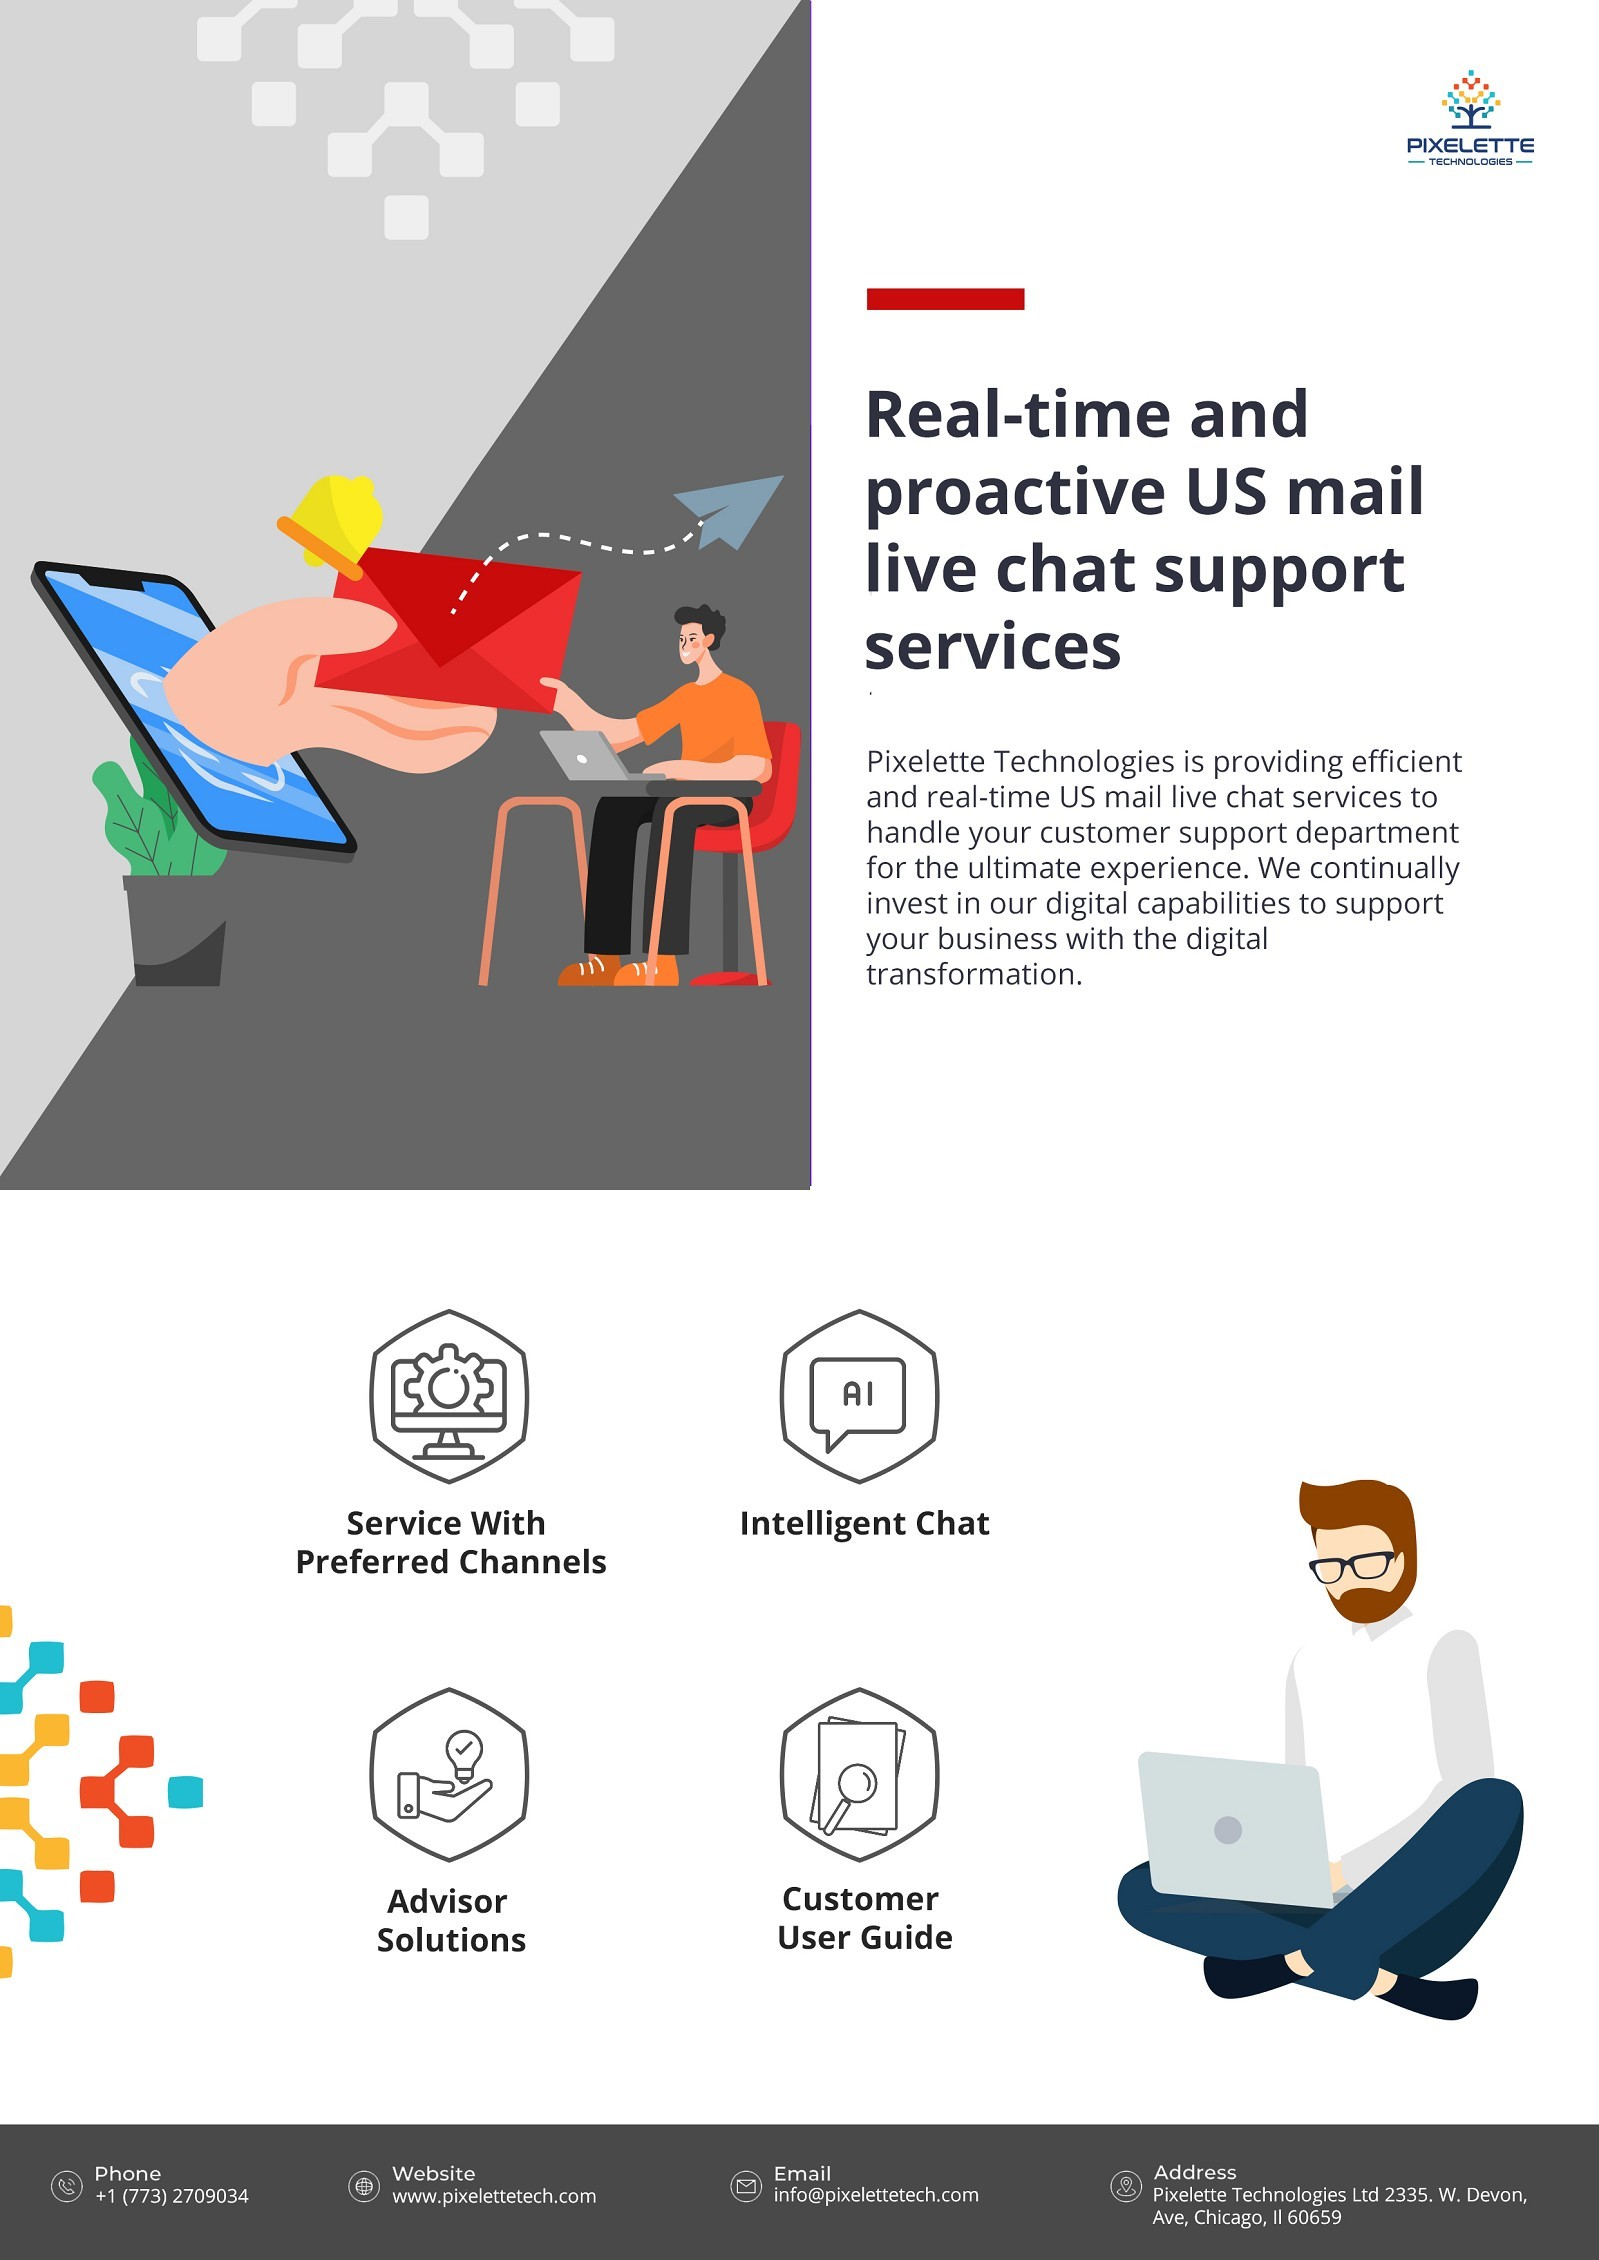 Real-time and proactive US mail live chat support services